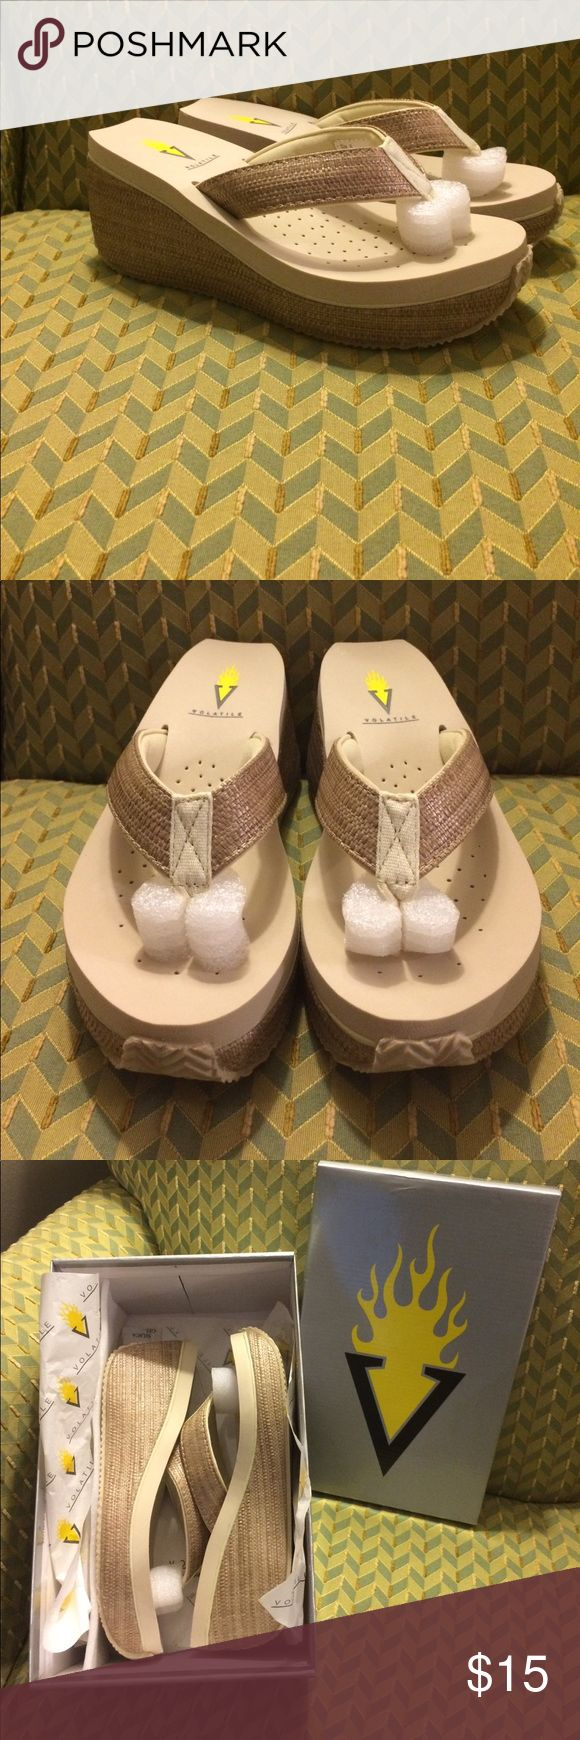 Volatile wedge flip flops. These flip flop sandals are brand new and so cute!  Great for the beach, hanging out by the pool or anytime really. Never been worn and still in original box. Volatile Shoes Sandals